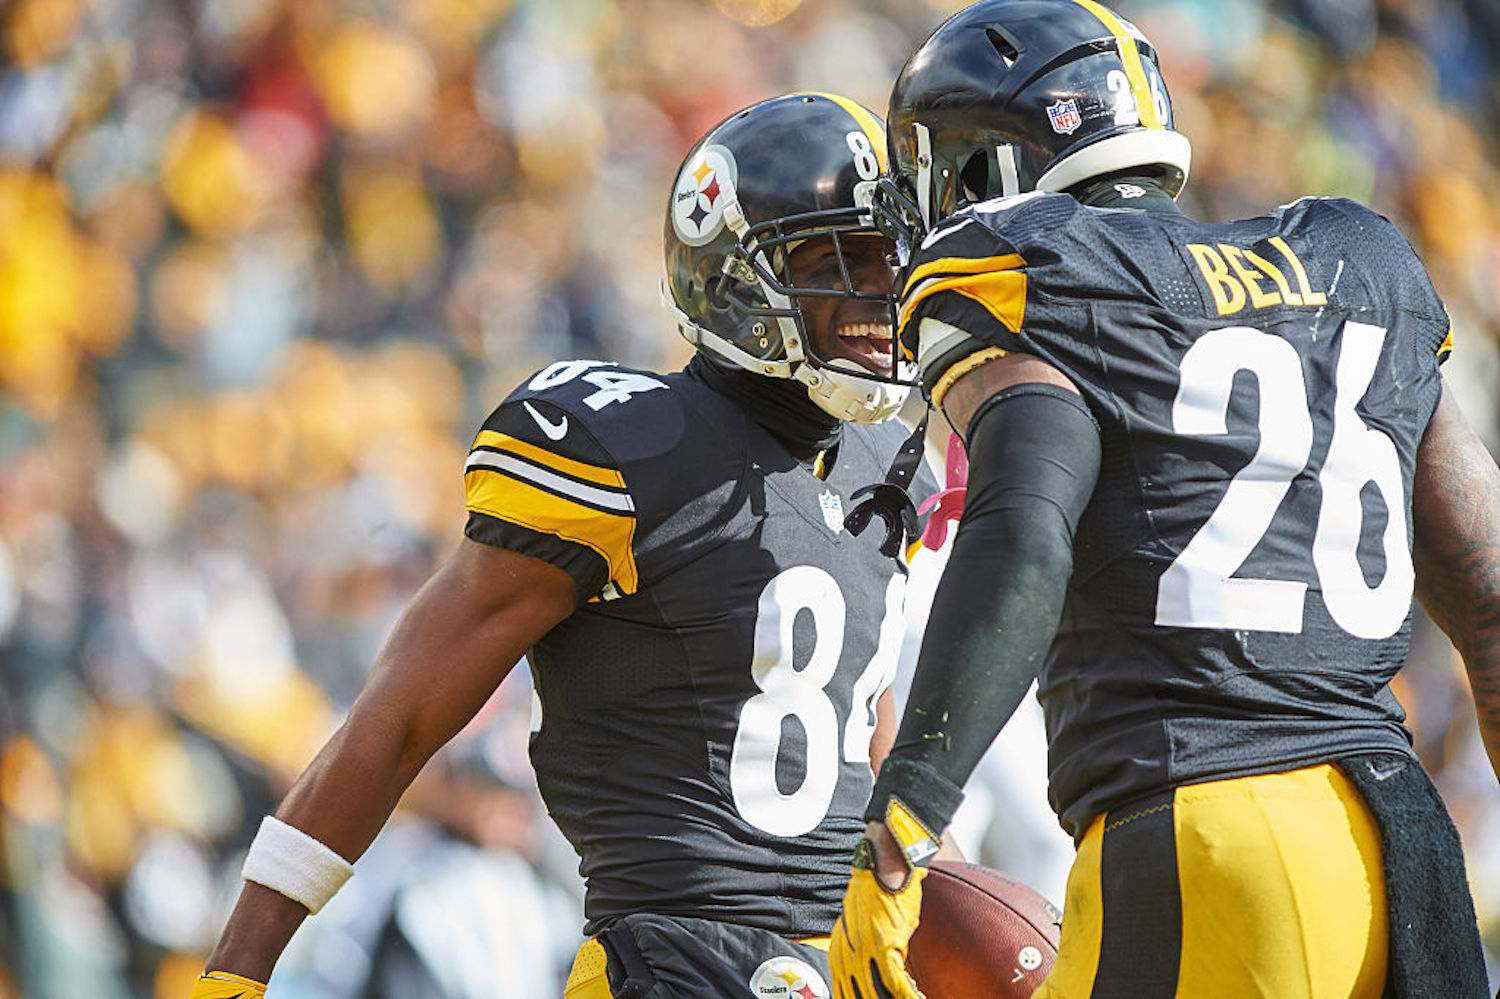 Le'Veon Bell and Antonio Brown were the most dominant RB/WR duo in the NFL just three years ago, but now they're both unemployed.